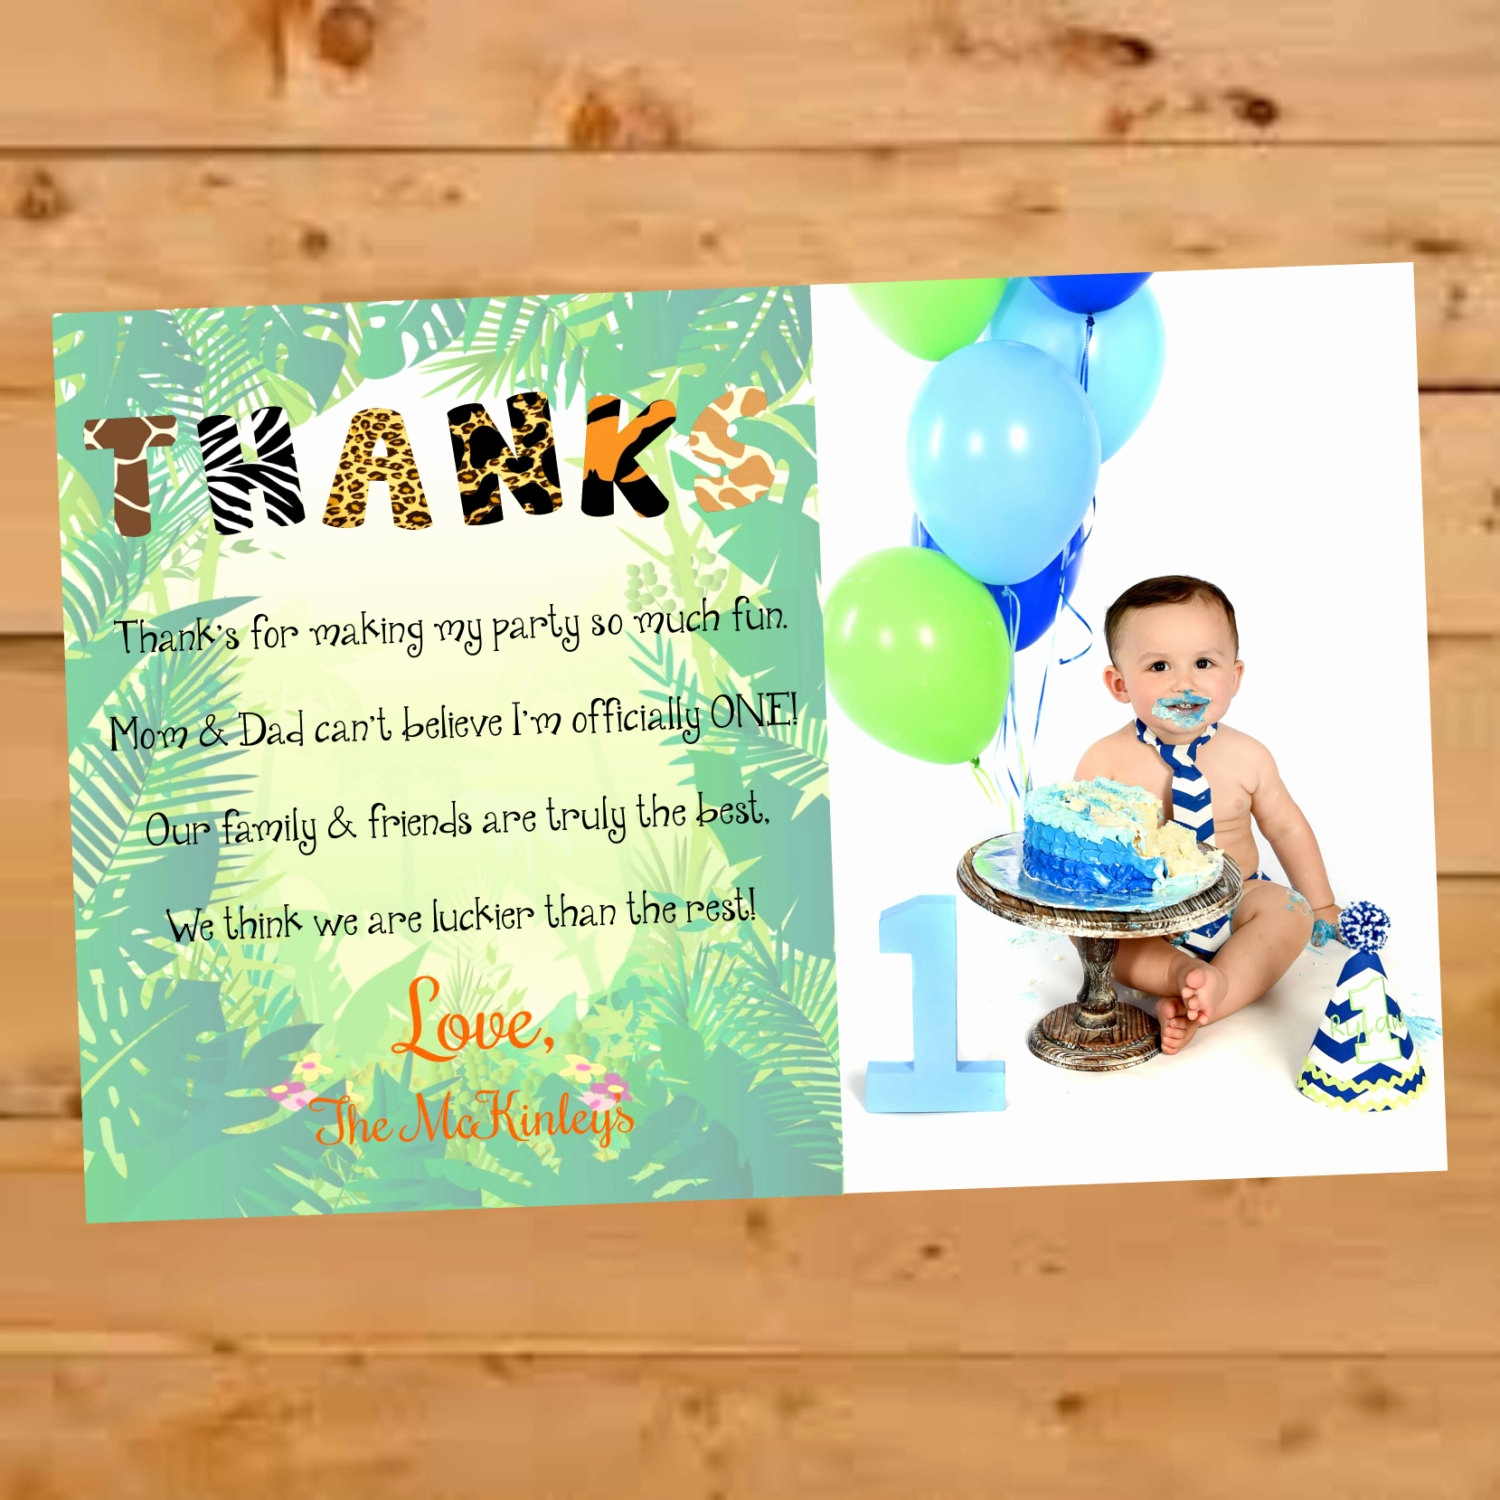 2 year old birthday card ideas ; grandson-first-birthday-card-fresh-colors-2-year-old-birthday-card-girl-as-well-as-birthday-card-of-grandson-first-birthday-card